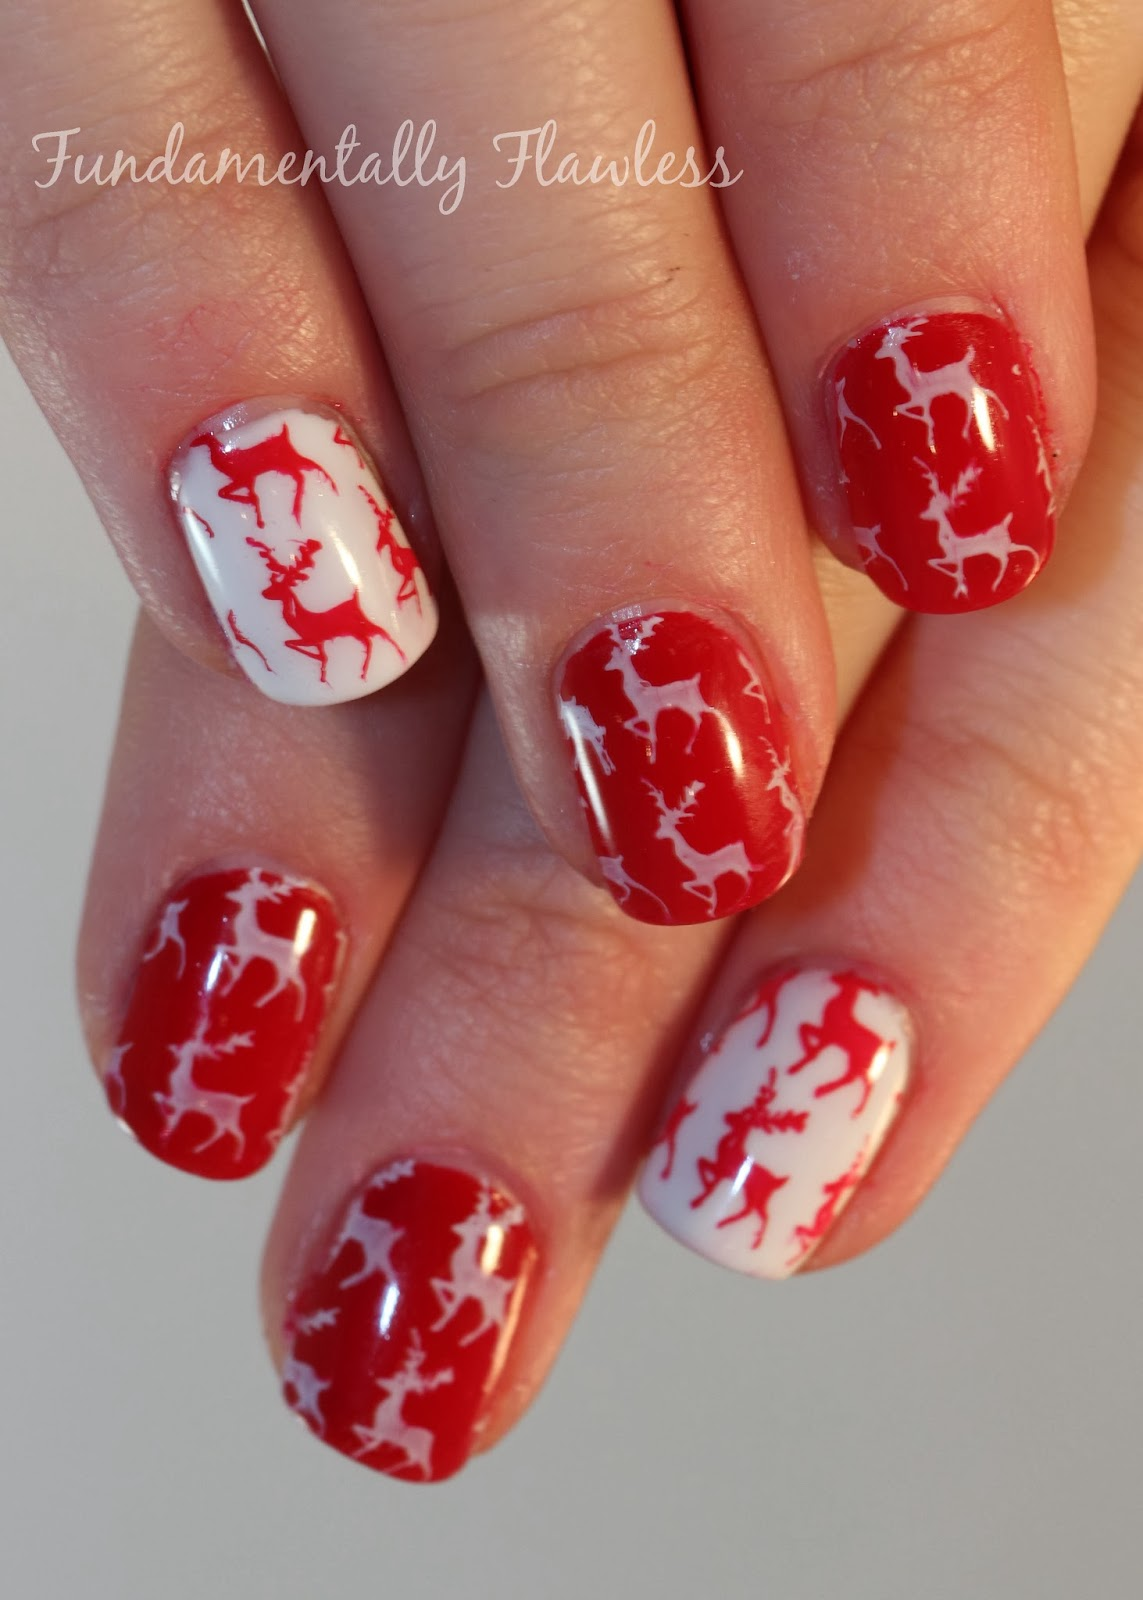 Fundamentally flawless christmas nail art reindeer nails moyou reindeer nail art with moyou festive collection 03 stamping plate prinsesfo Images